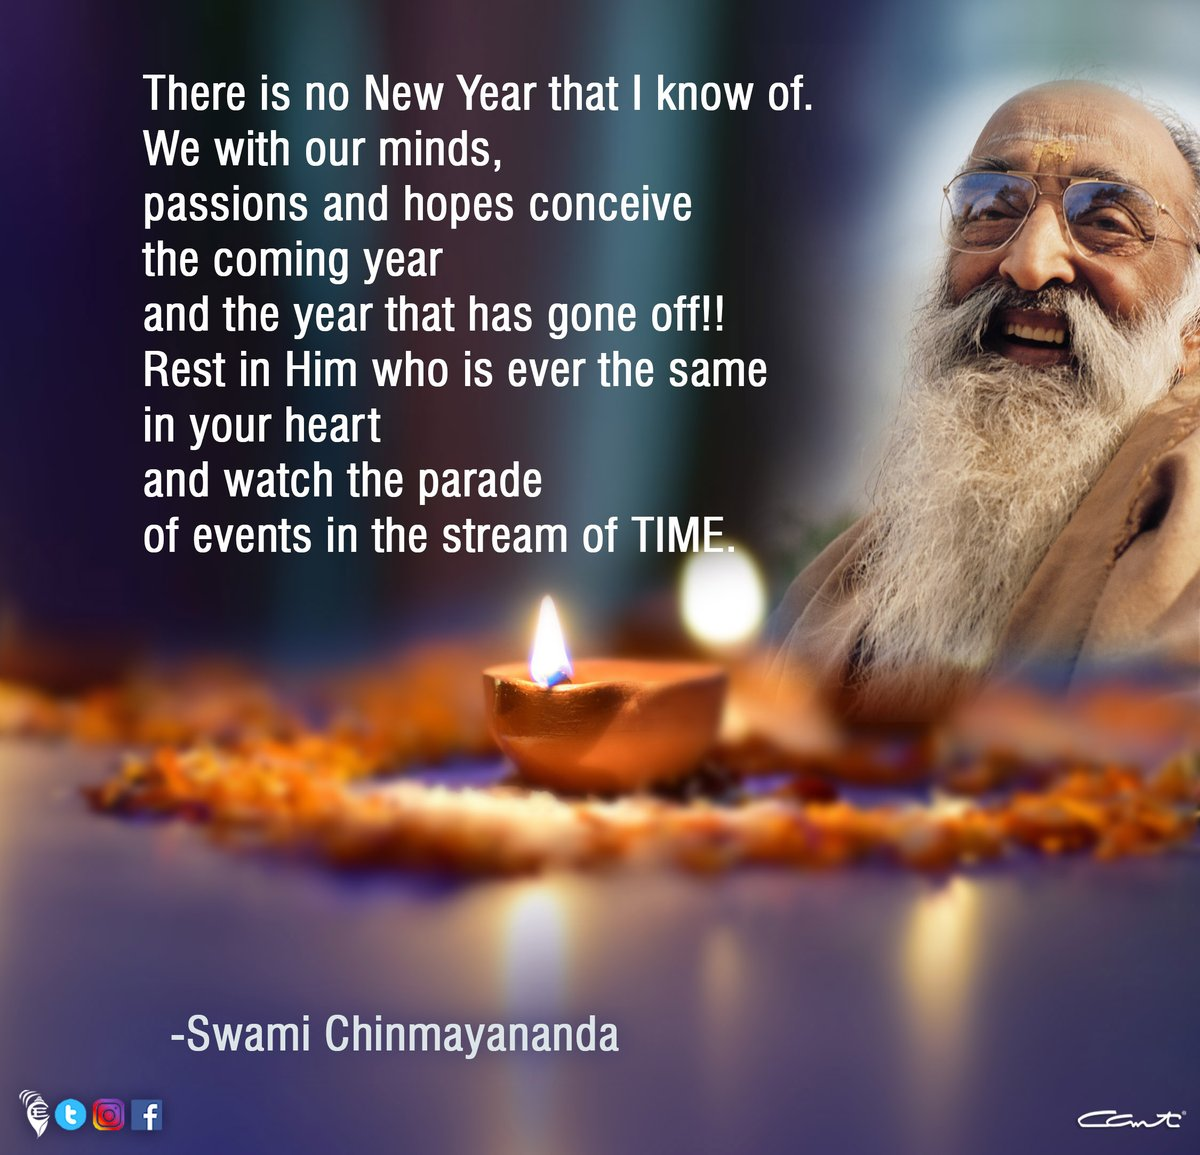 Rest in Him who is ever the same in your heart and watch the parade of events in the stream of TIME. - Swami Chinmayananda  #newyear2021 #welcome2021 #goodbye2020 #lordvishnu #bhakti #dhyana #sanatandharma #hinduism #youtubelive #chinmayamission  #celebrations #newyearseve